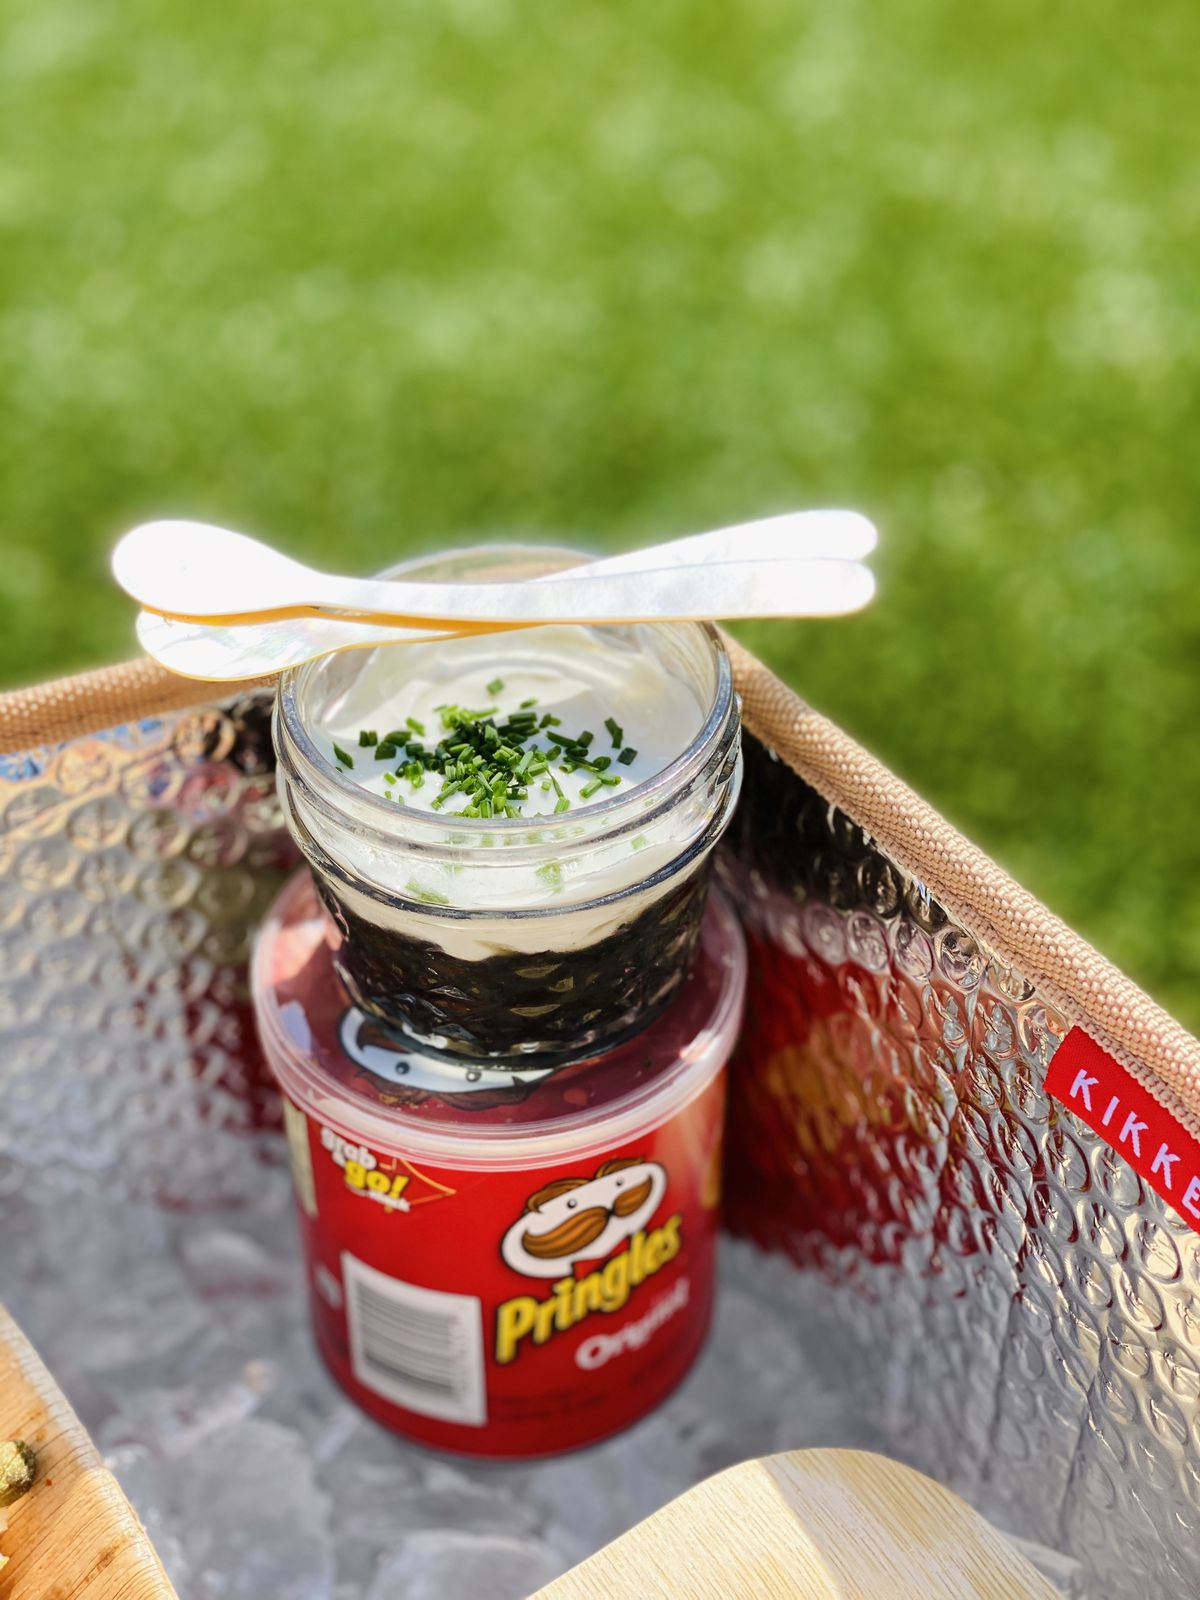 A package of Pringles and caviar costs $75.